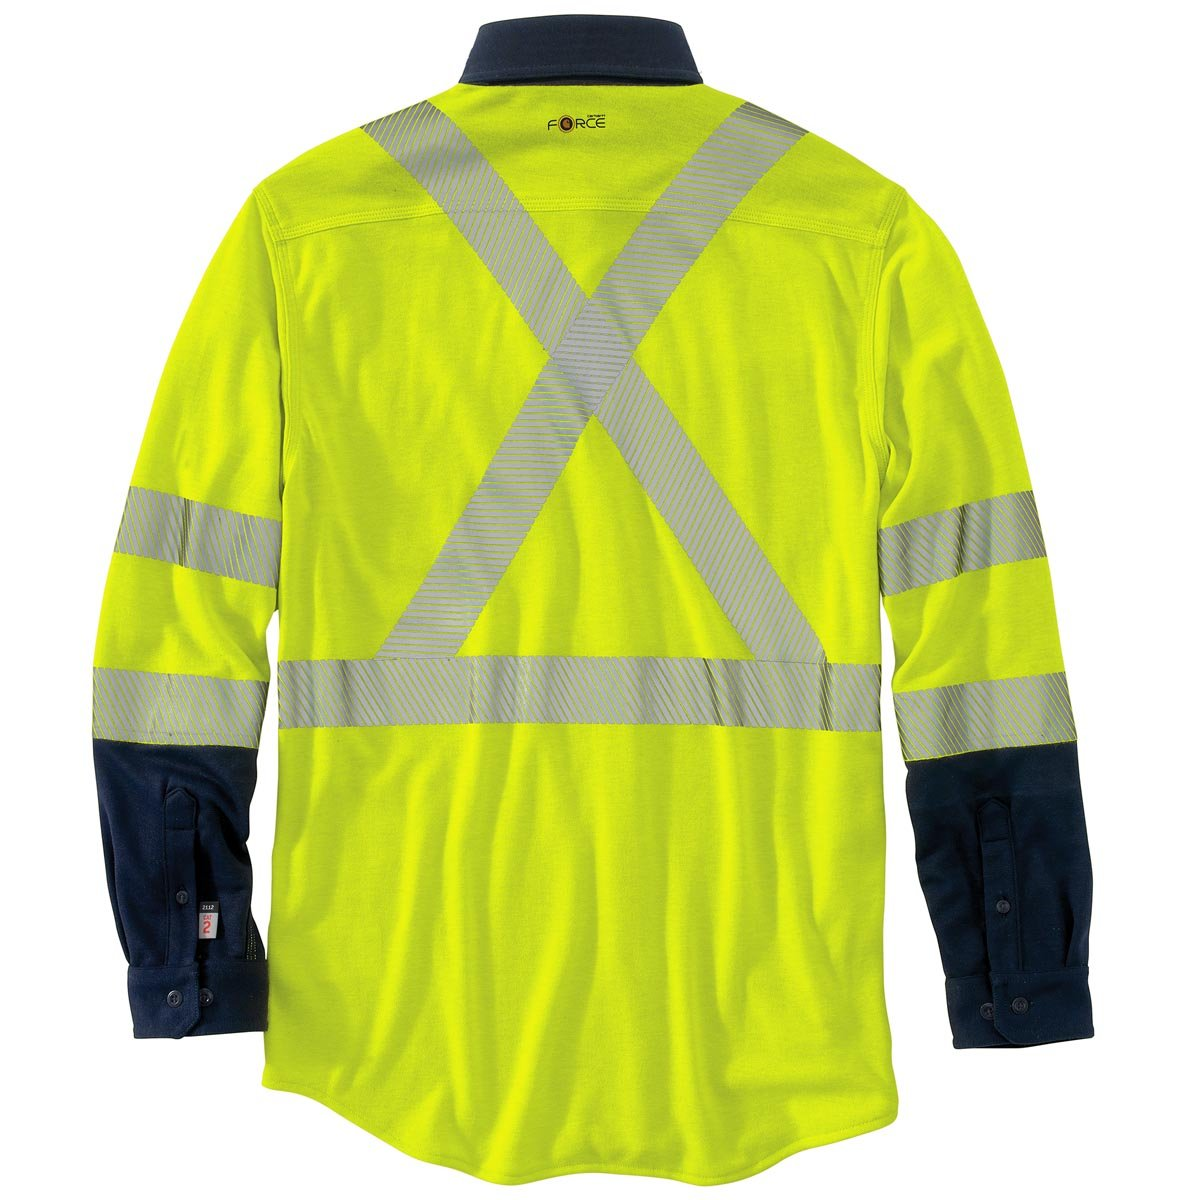 6ca4ff490d159 Amazon.com: Carhartt Men's Big & Tall Flame Resistant Hi Vis Force Hybrid  Shirt Class 3: Clothing